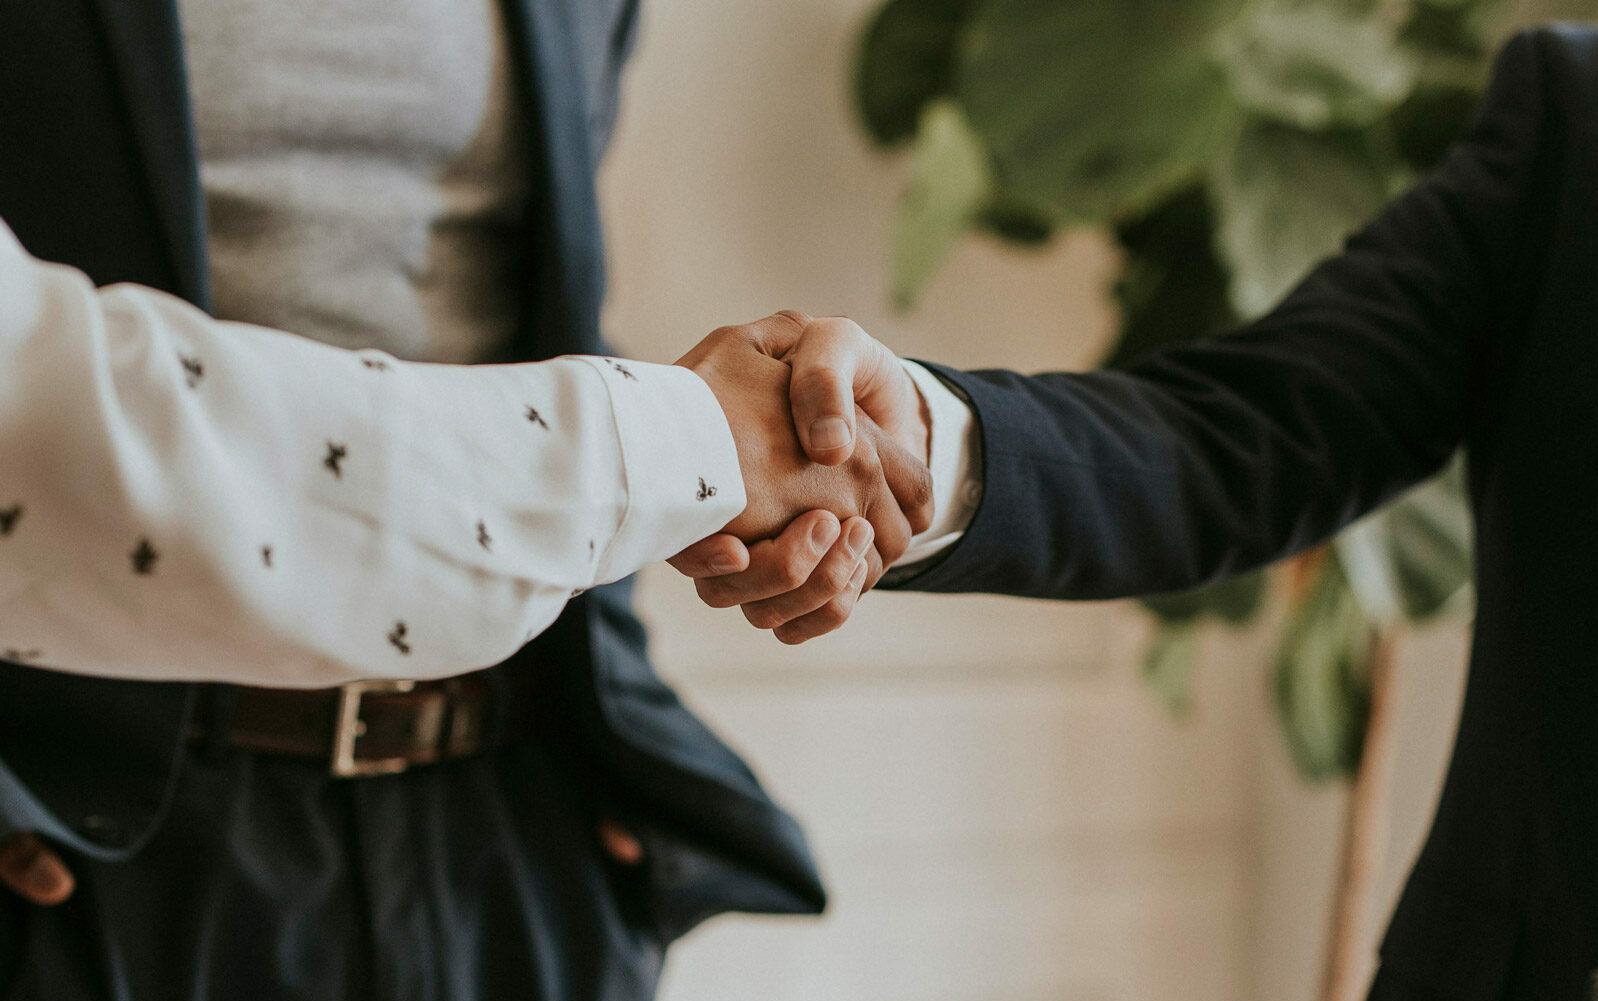 Shot of two people shaking hands